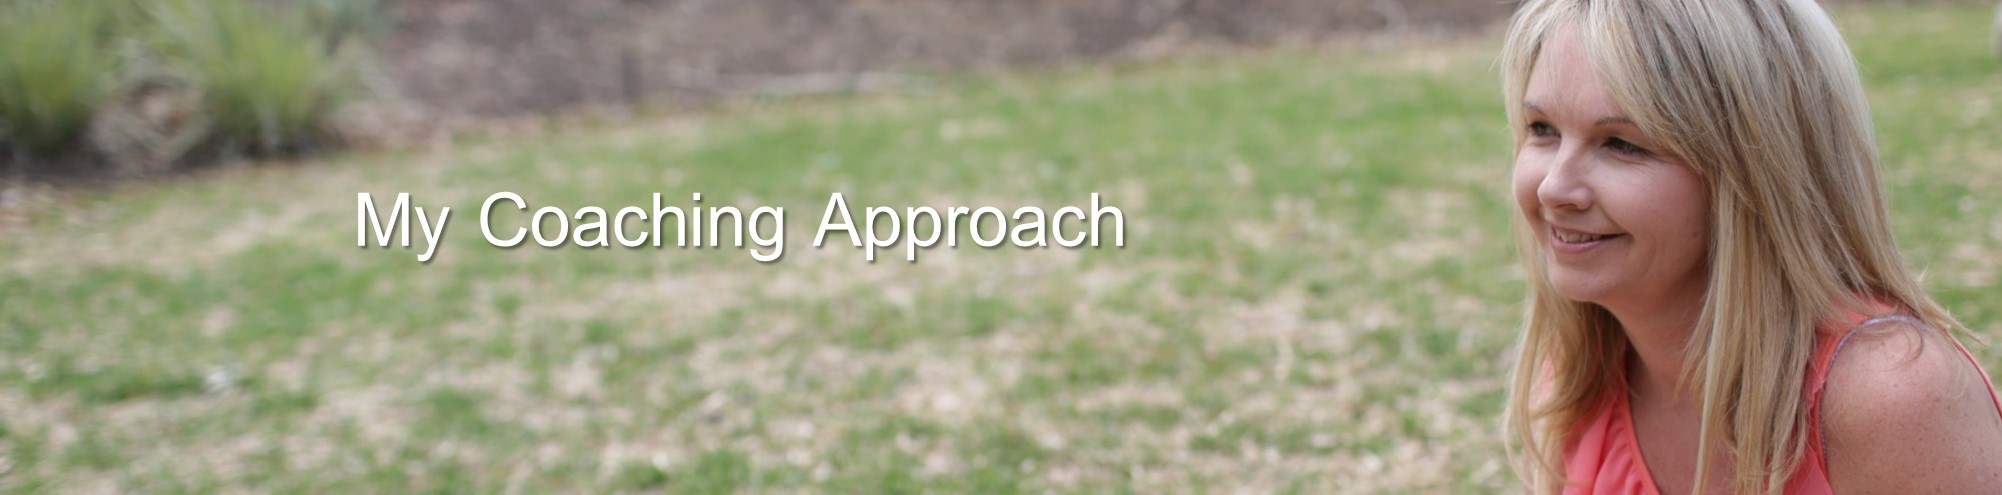 Coaching Approach Banner